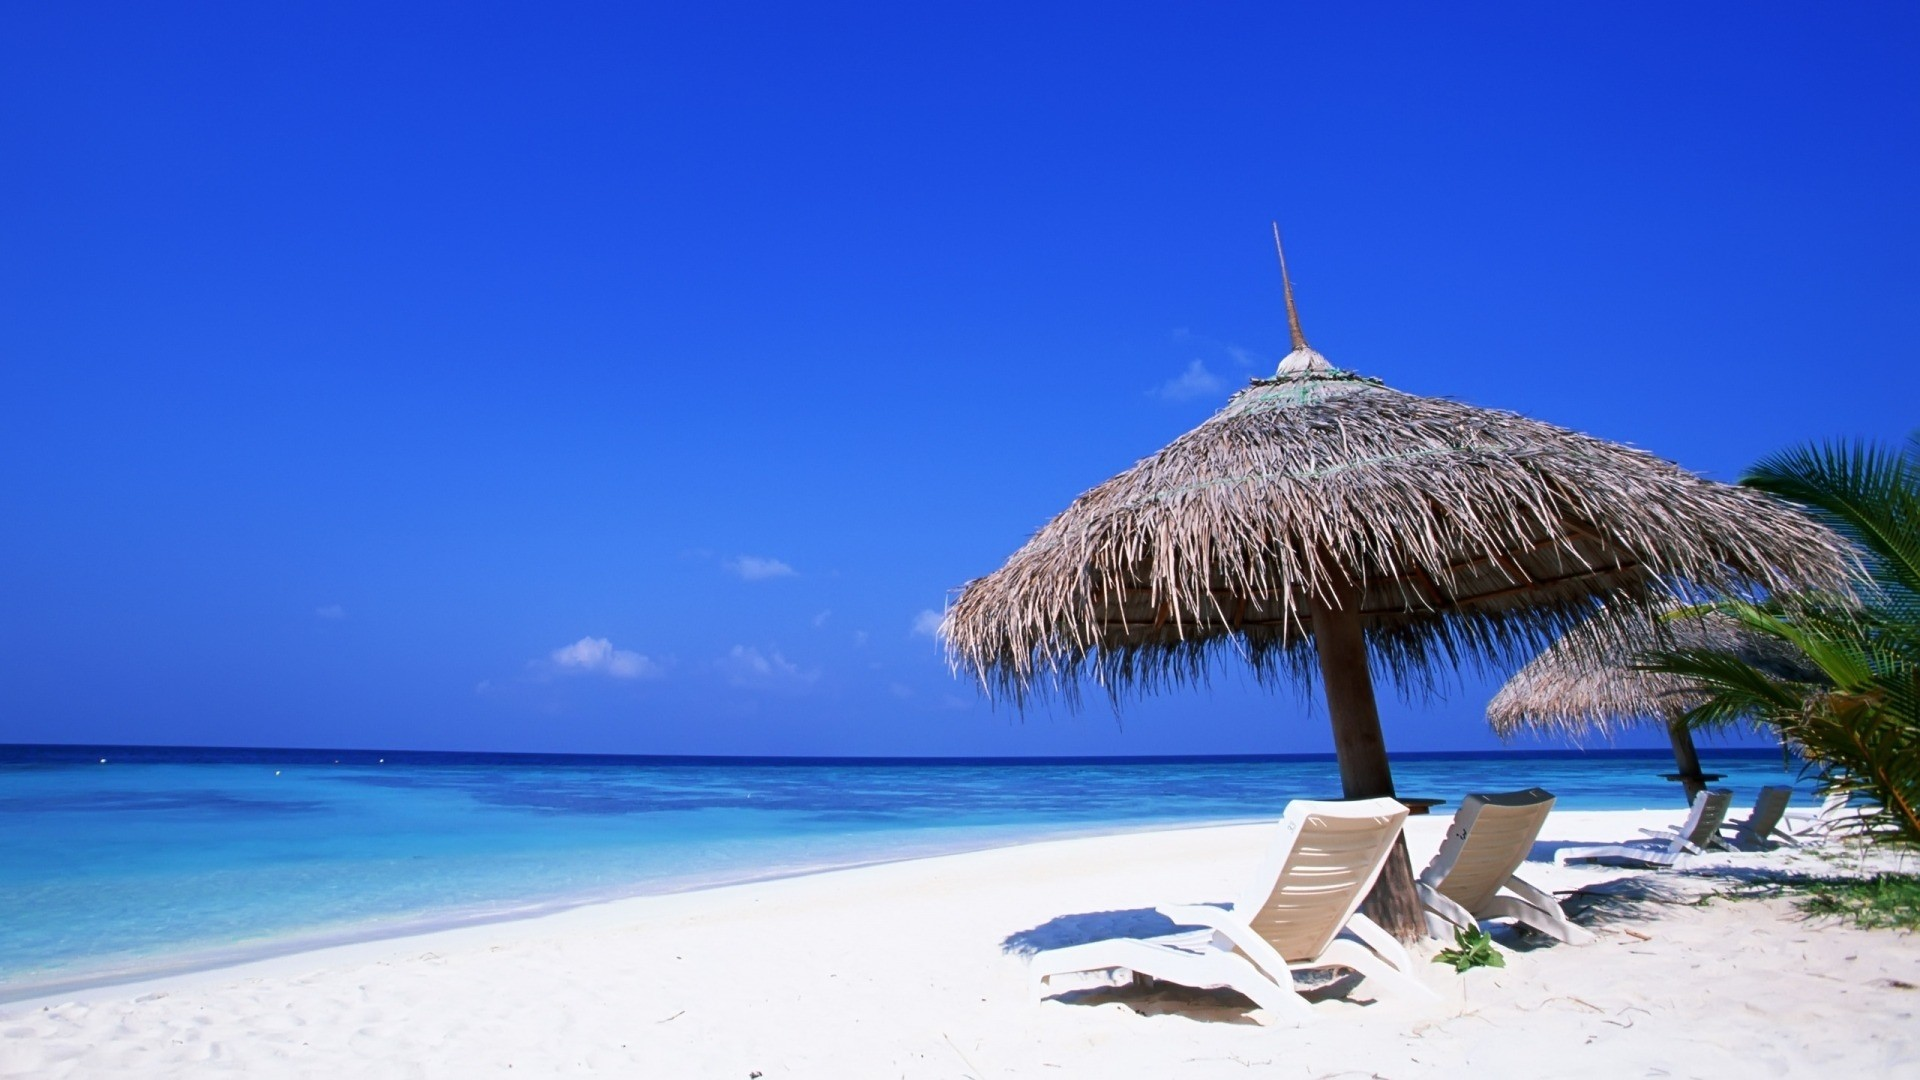 Res: 1920x1080, awesome beach scenes for wallpaper wide resolutions hd hd. DOWNLOAD